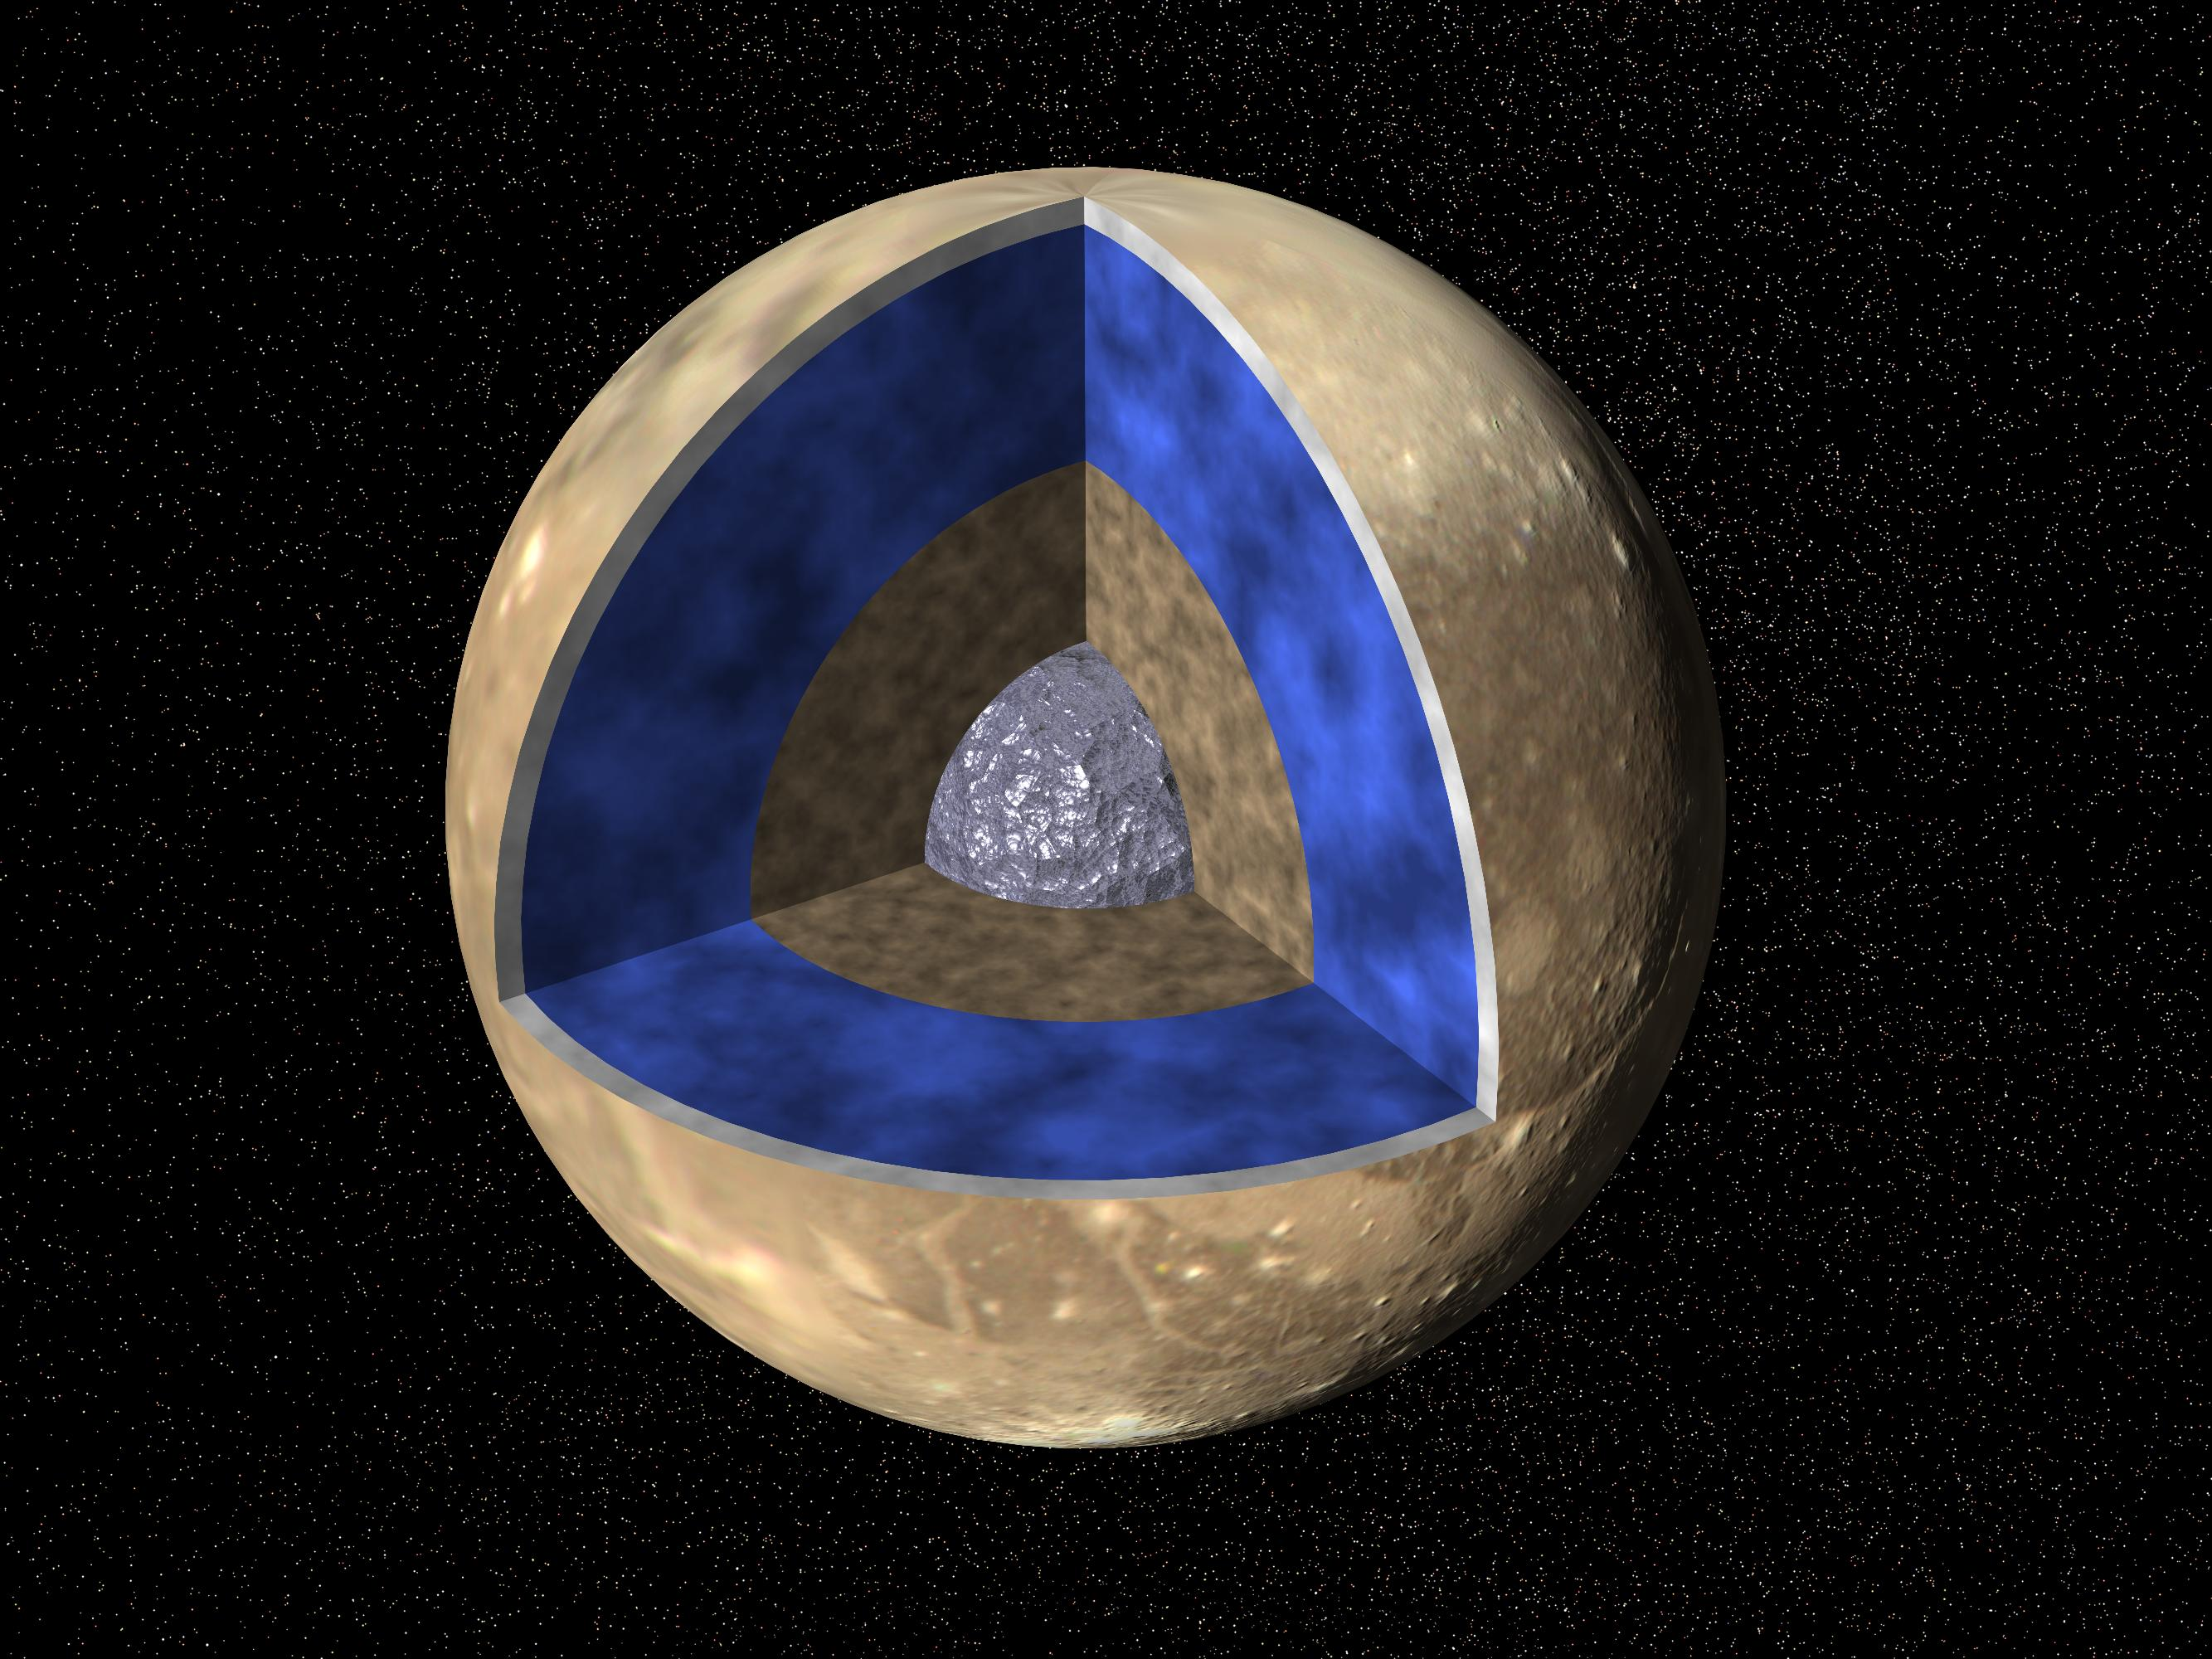 PIA00519 Interior of Ganymede